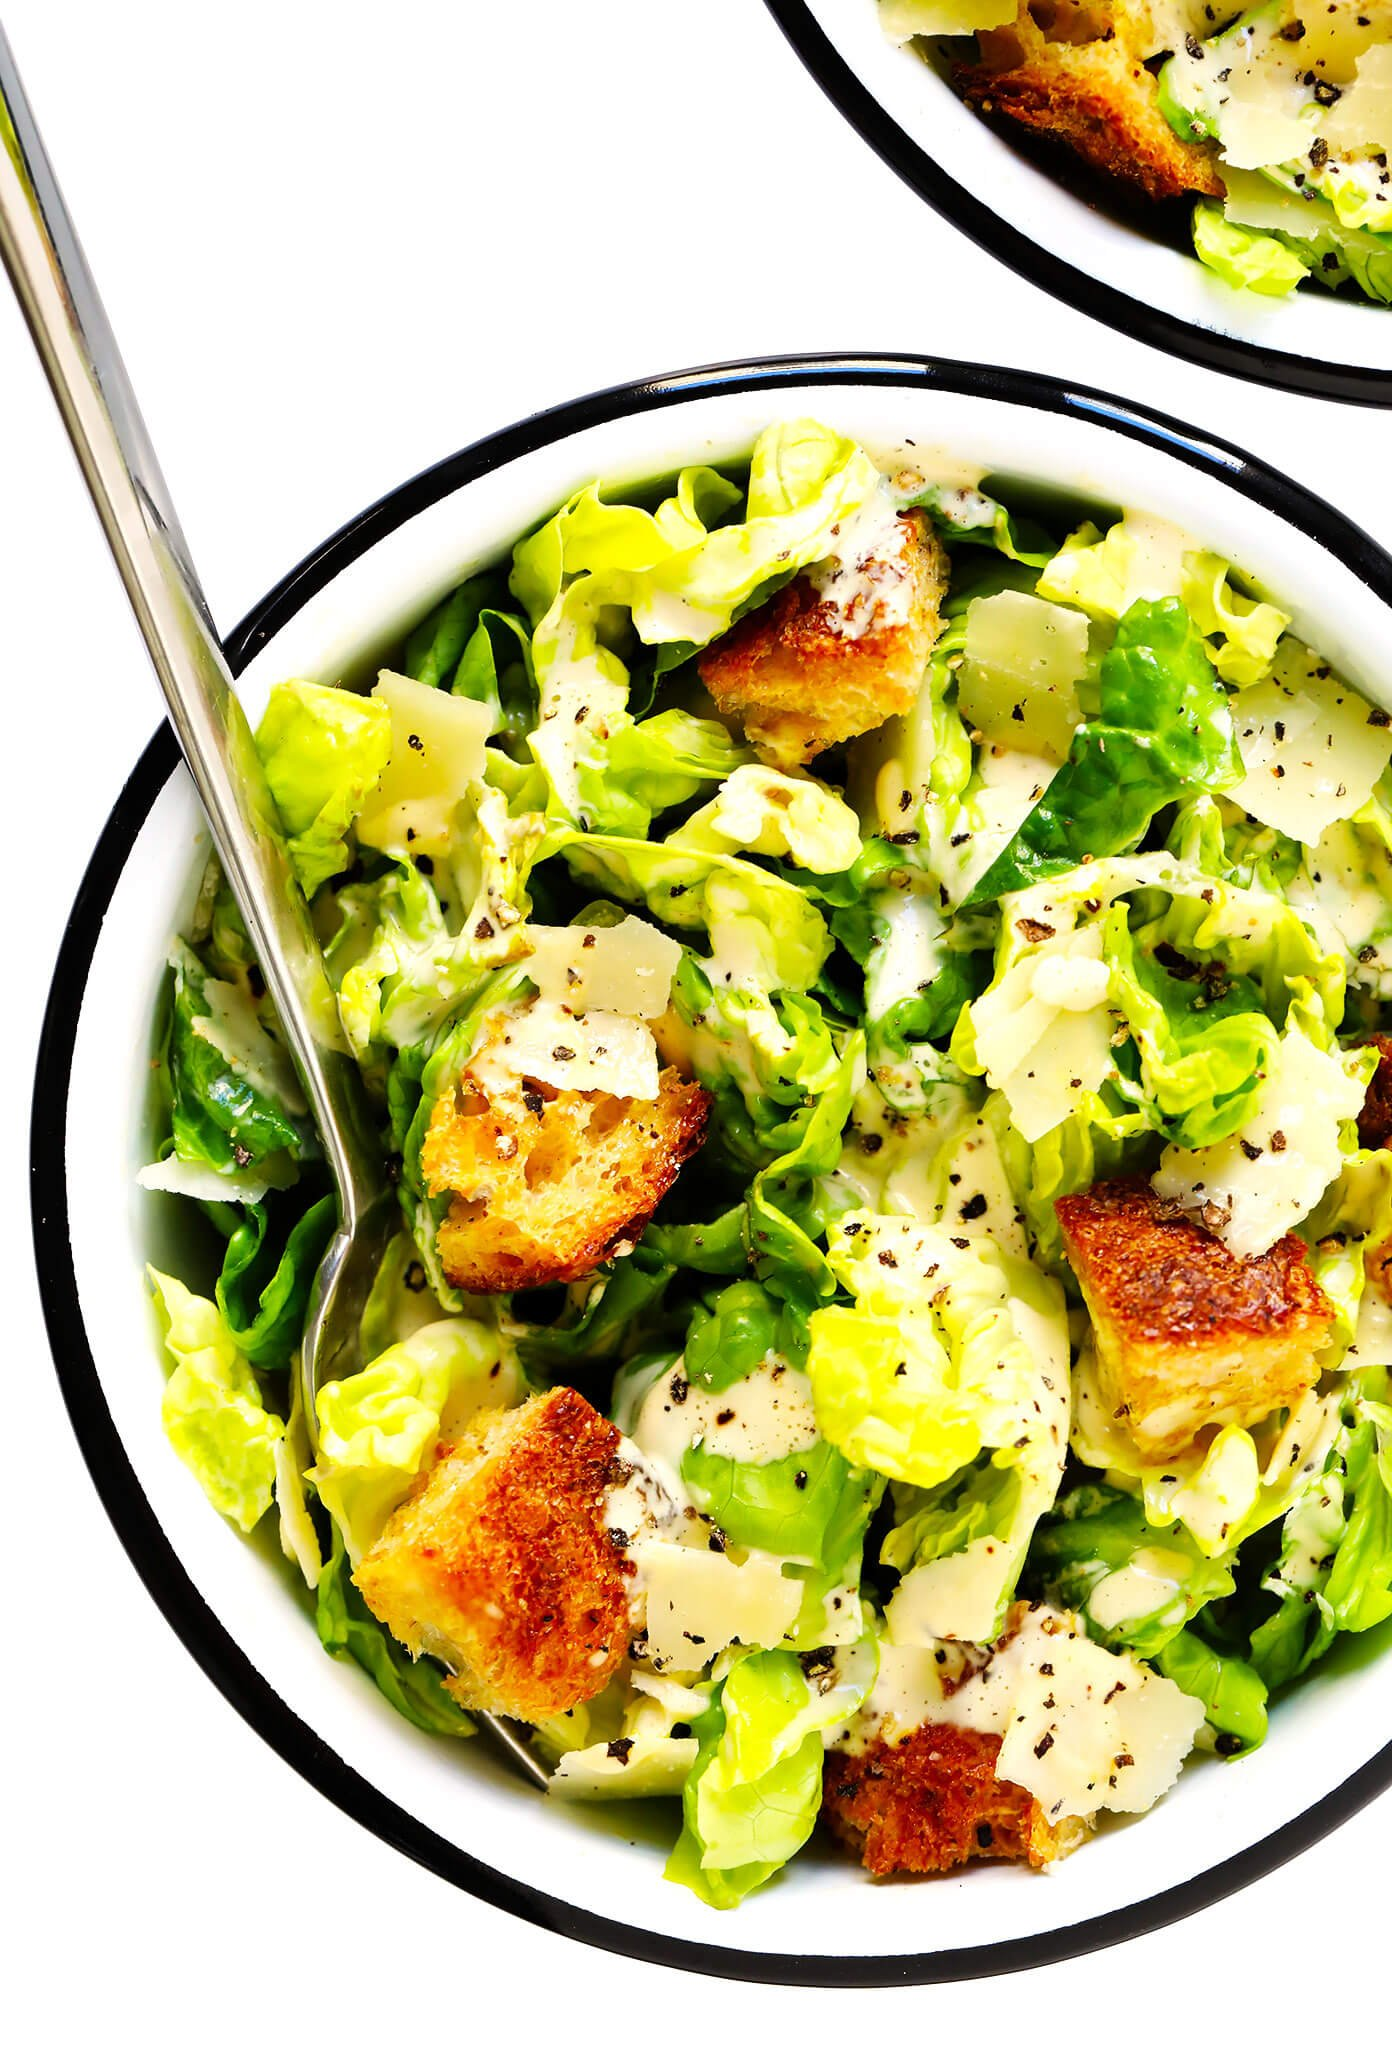 Caesar Salad in Bowls with Homemade Croutons